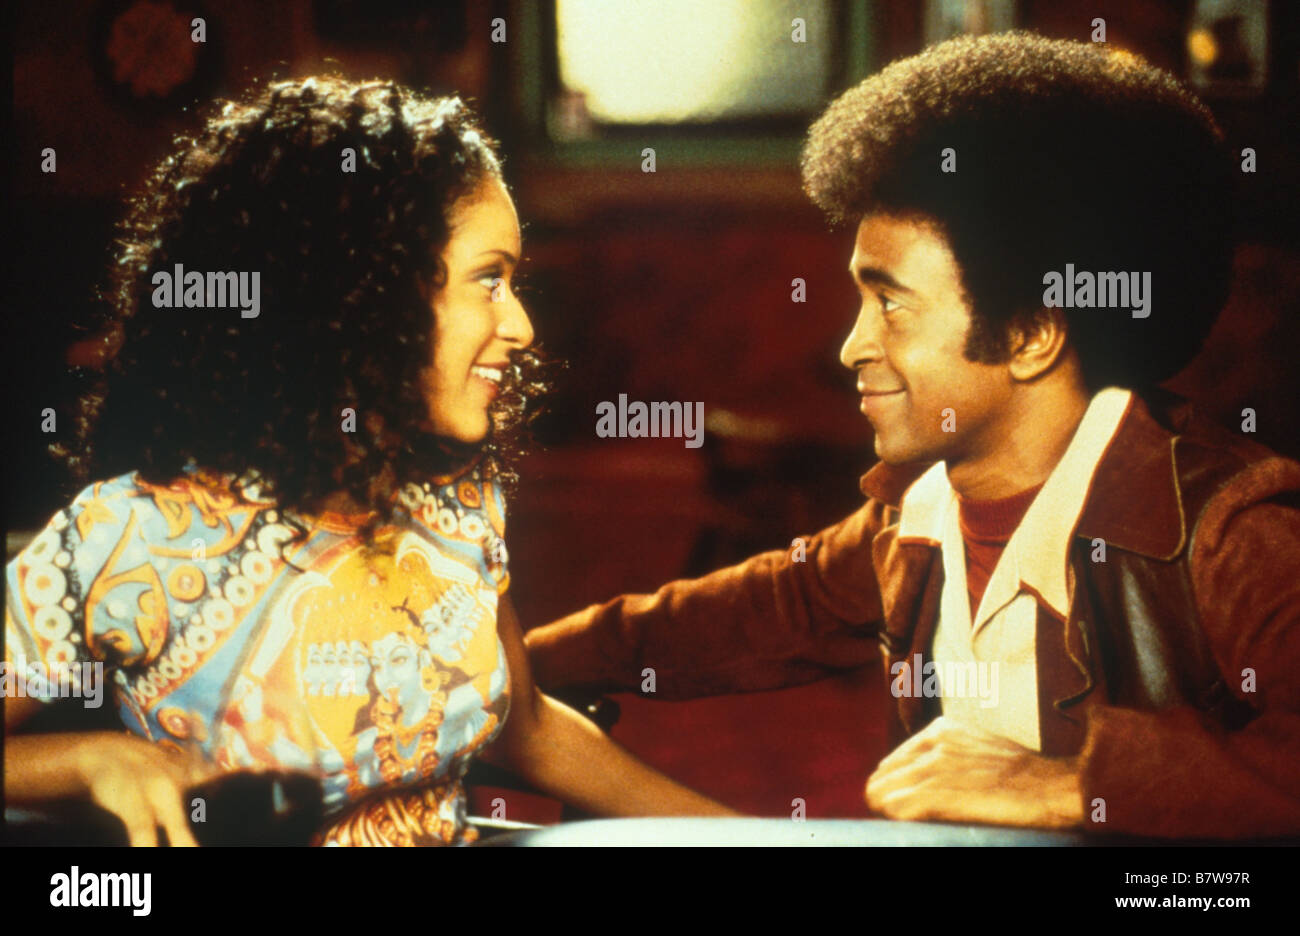 Karyn parsons ladies man